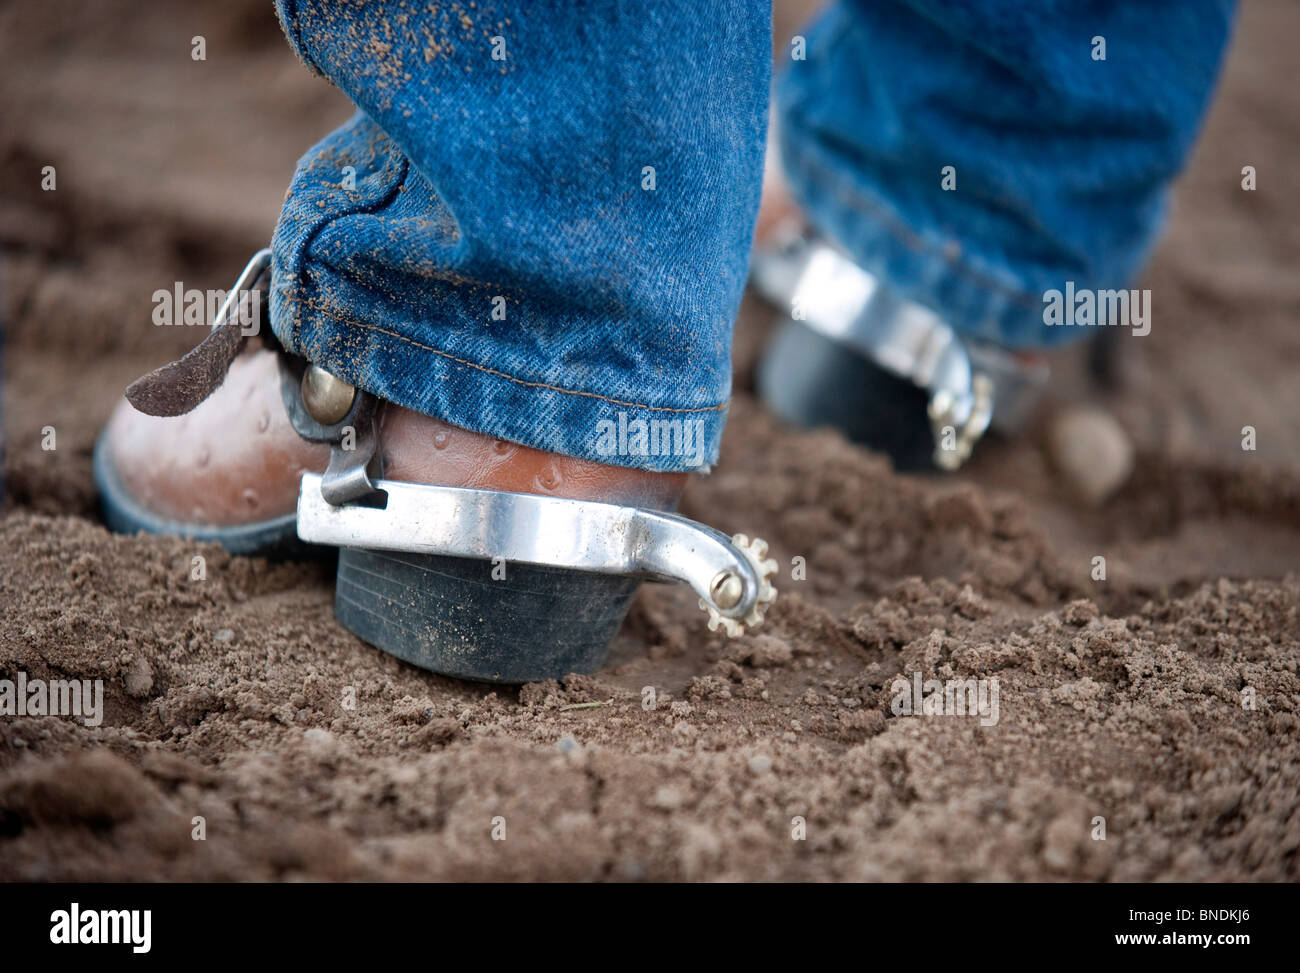 A pair of spurs on a child's boots at the rodeo. - Stock Image